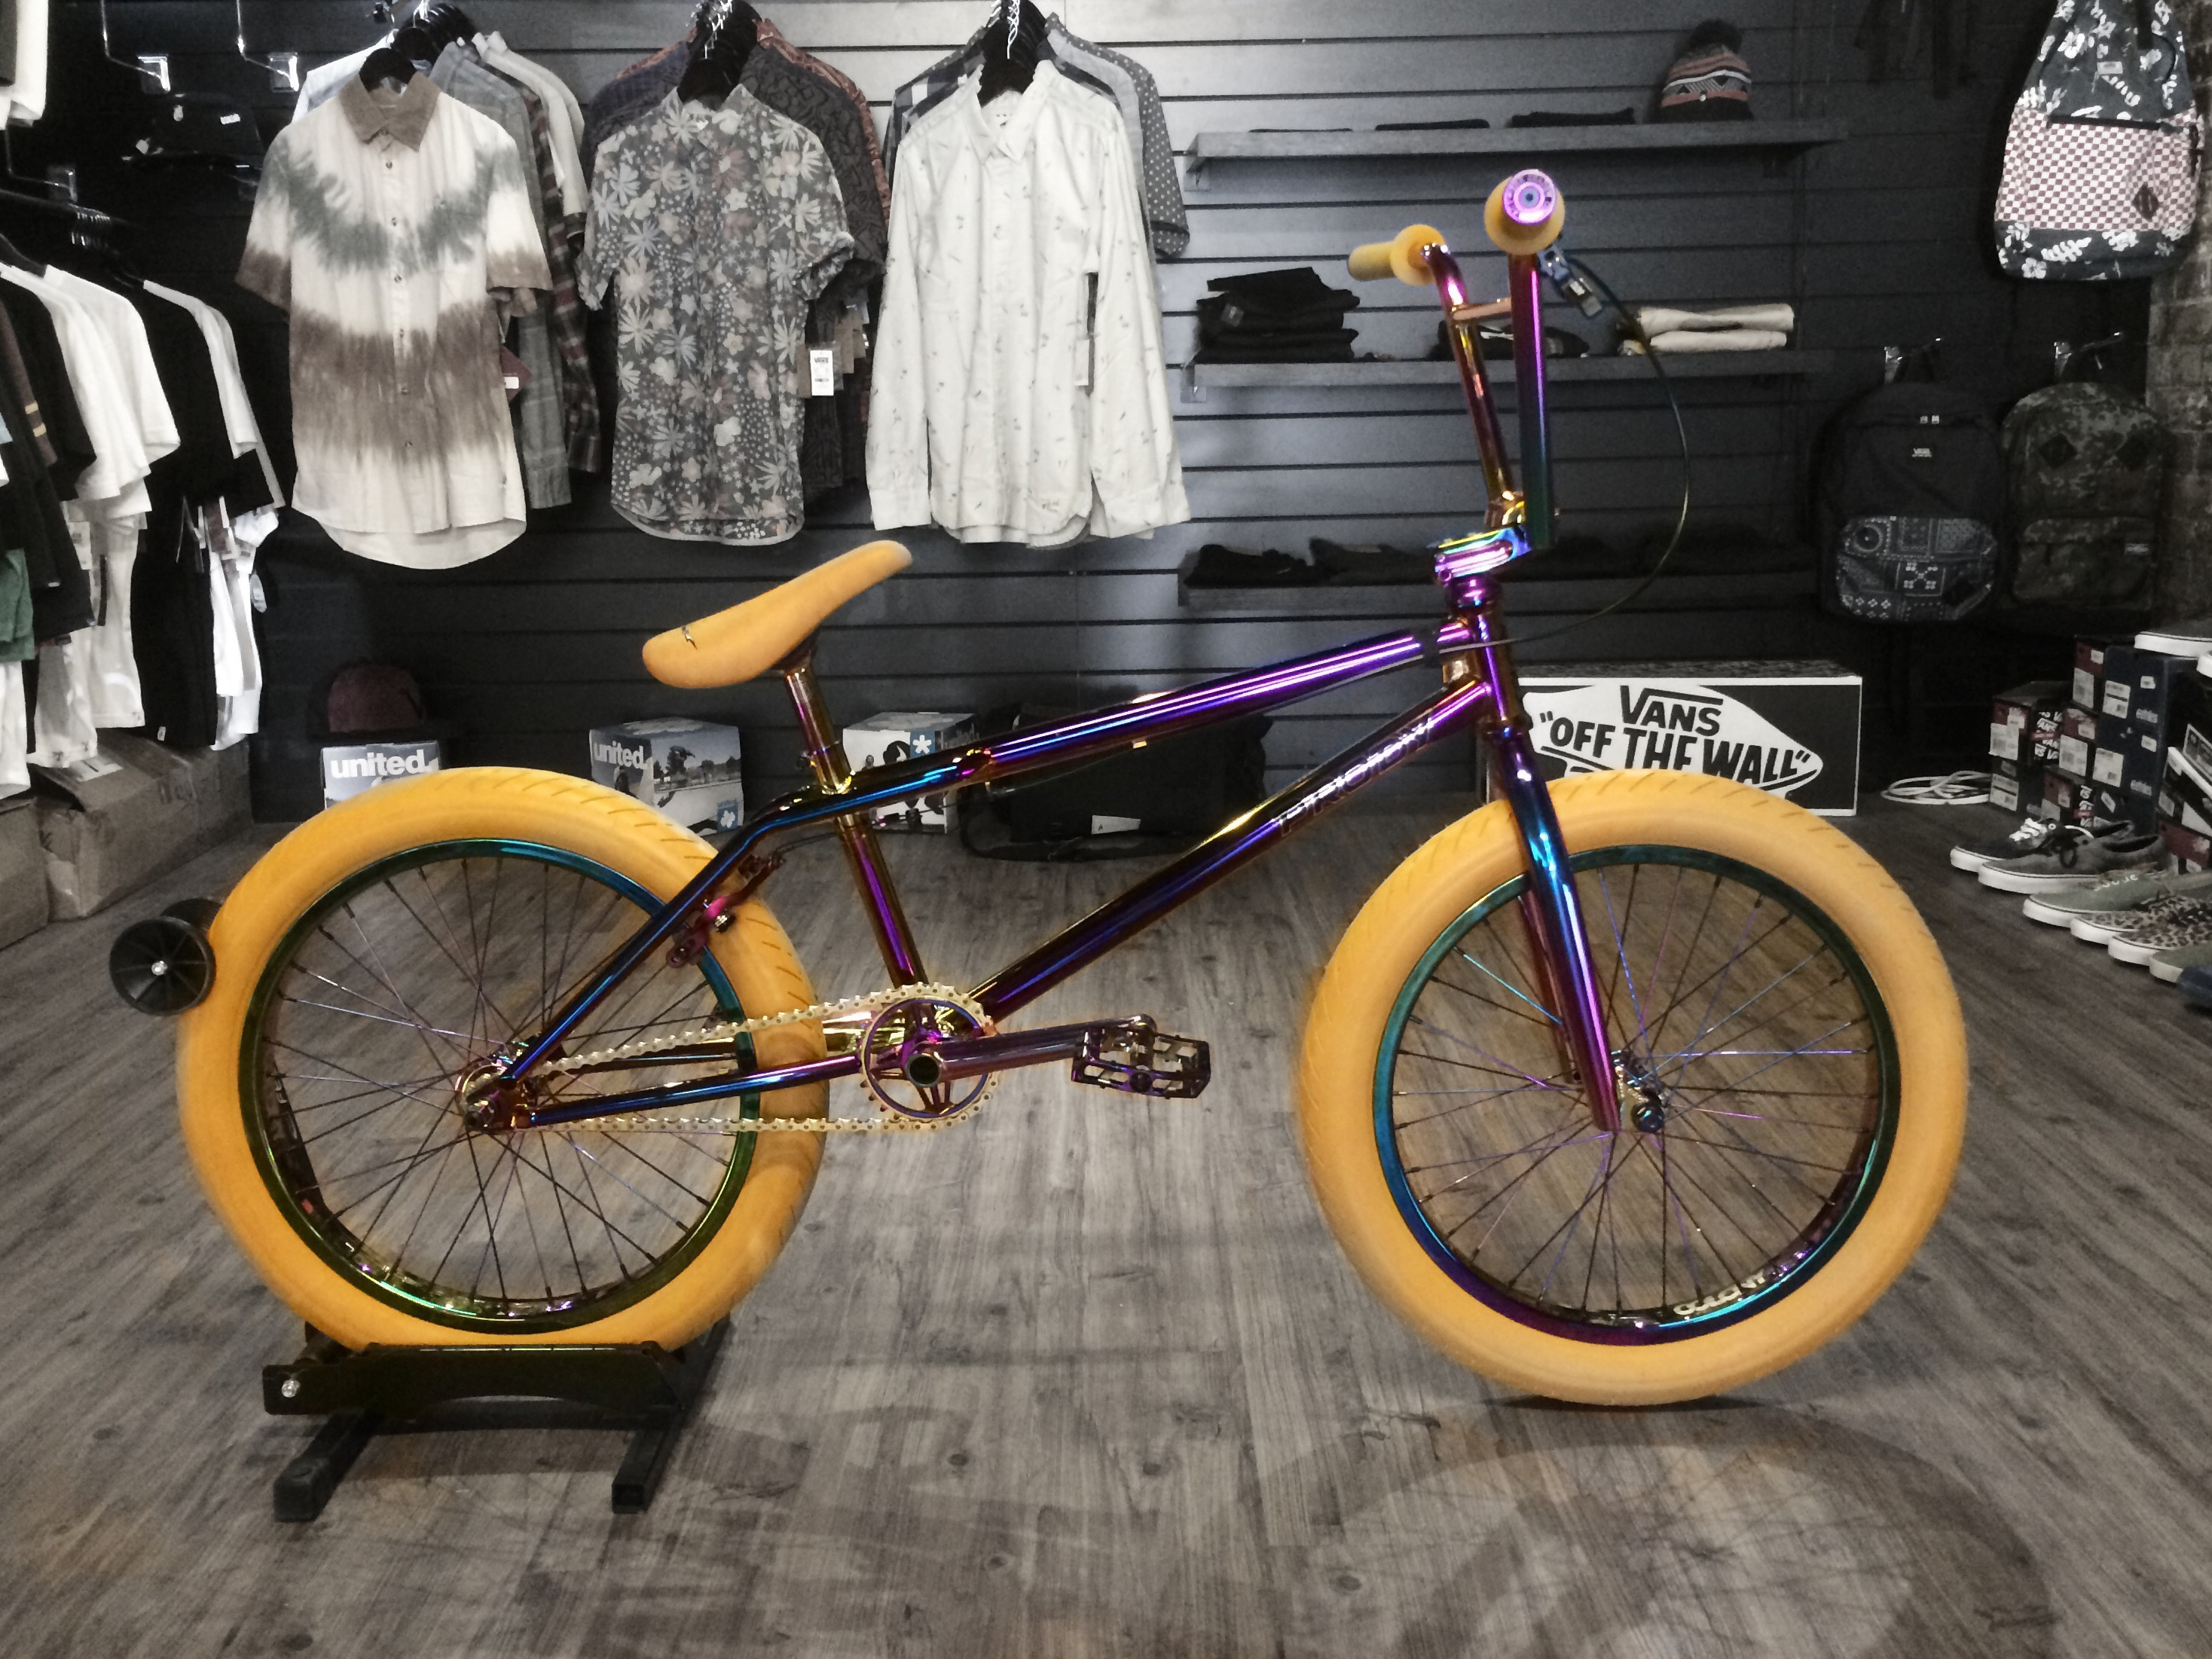 Colony BMX Product News Archives - Page 7 of 37 - Colony BMX